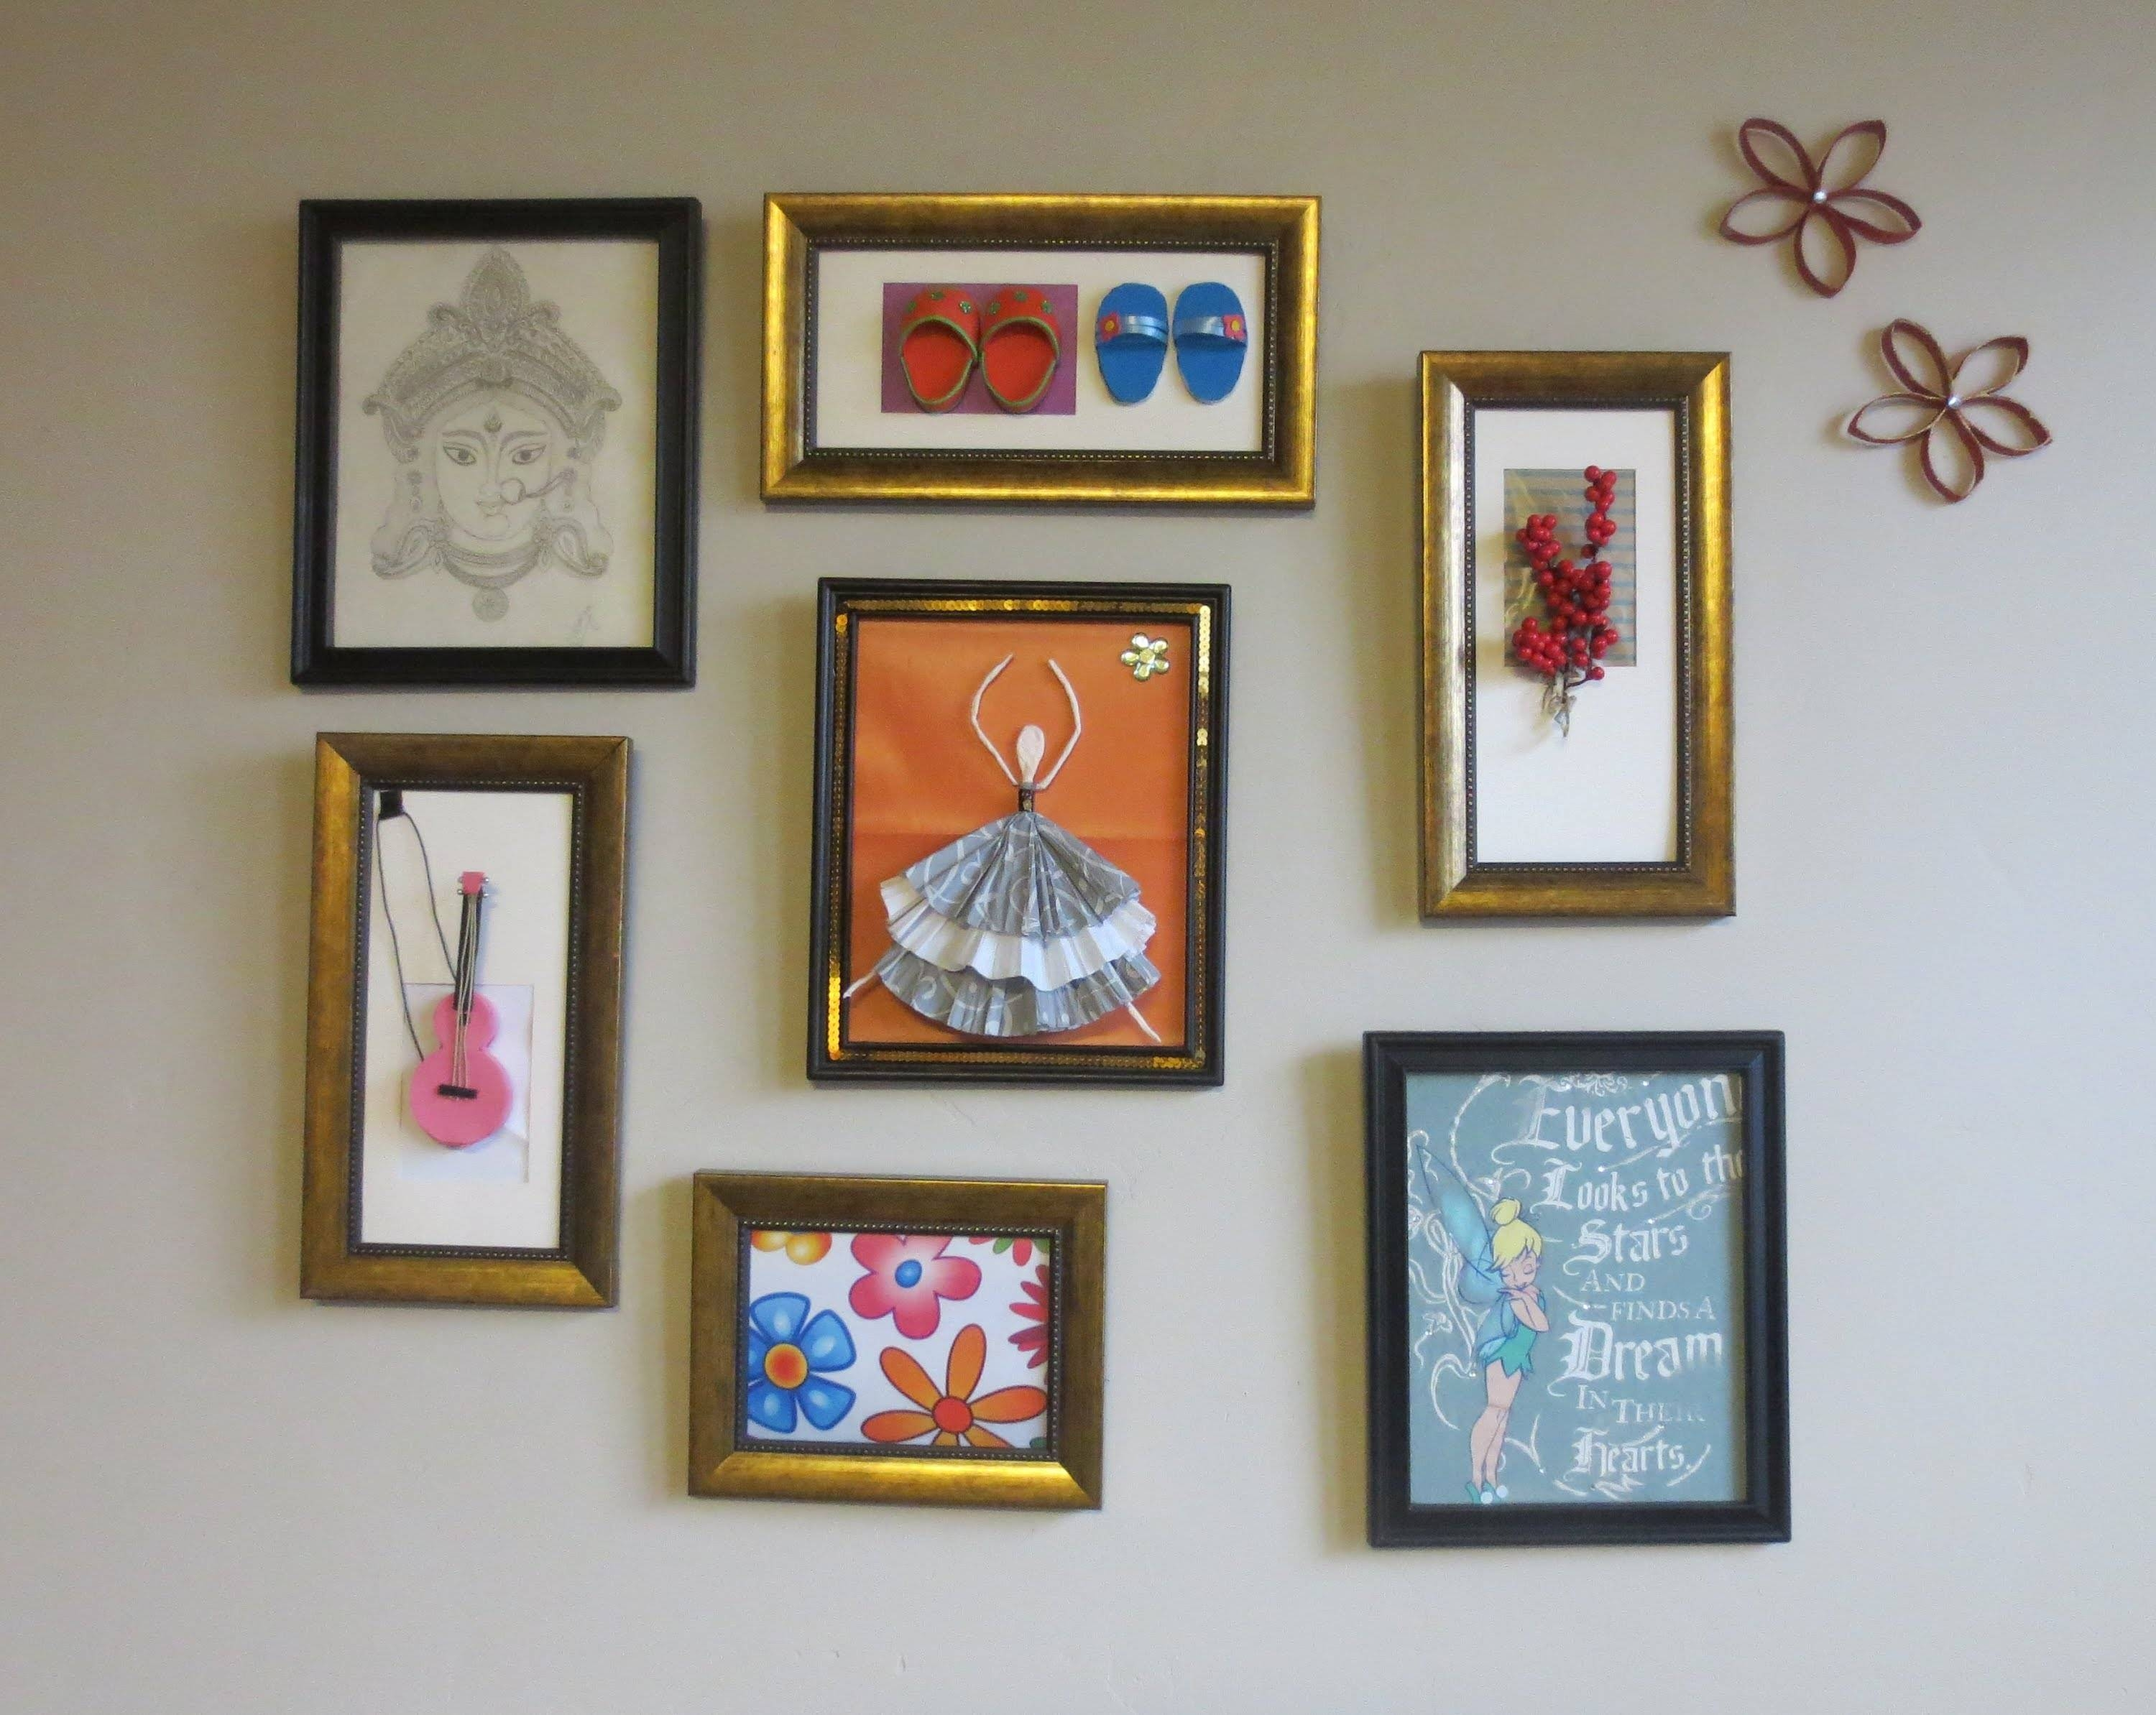 Home Decor : Tshirt Graphic & 3d Wall Art Picture Frame Collage Intended For Best And Newest Framed 3d Wall Art (View 1 of 20)